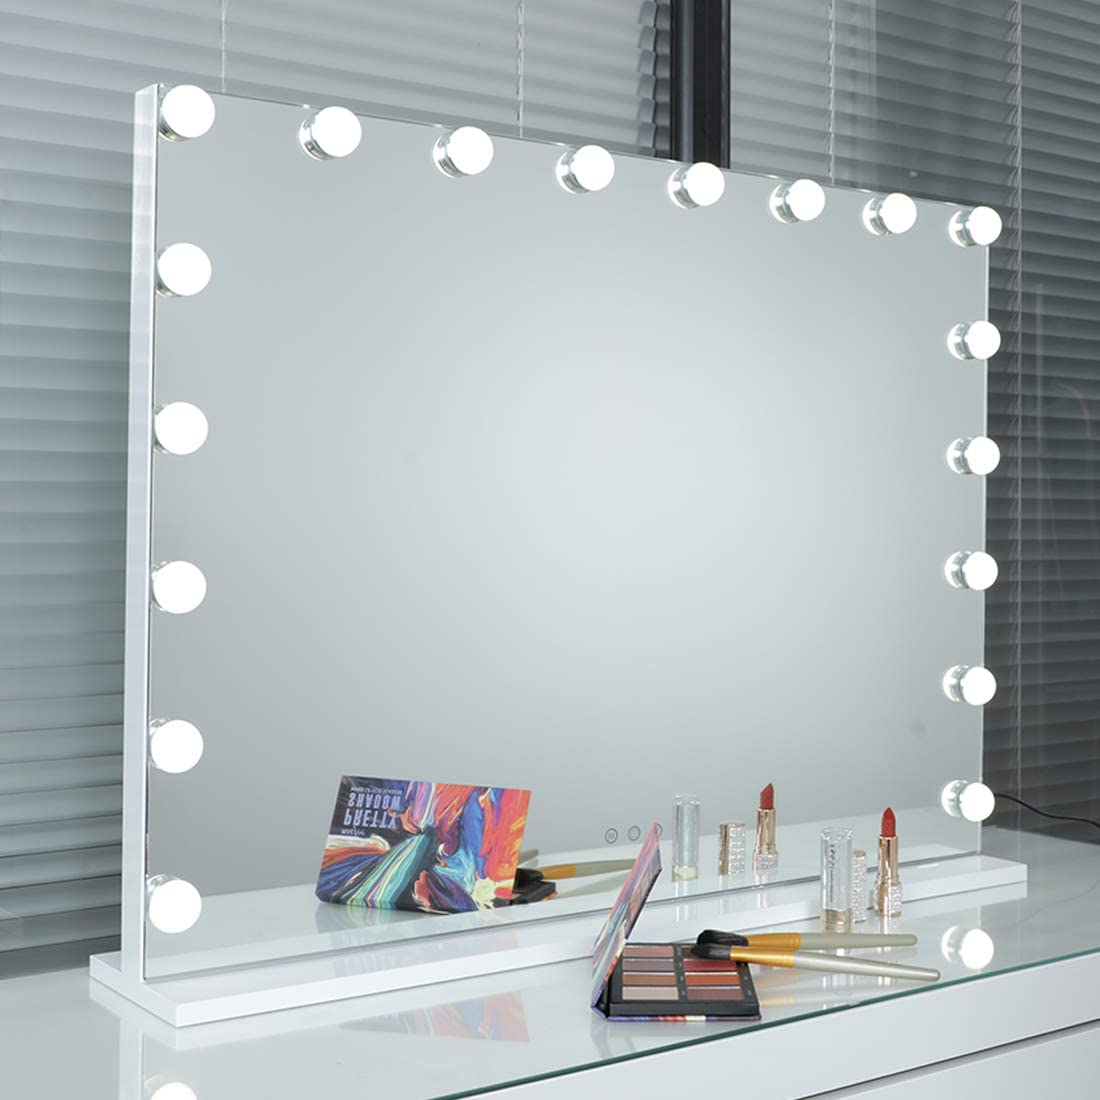 iCREAT Vanity Opening large release sale Mirror with Lights Lighted Mirro Hollywood Makeup Ranking TOP7